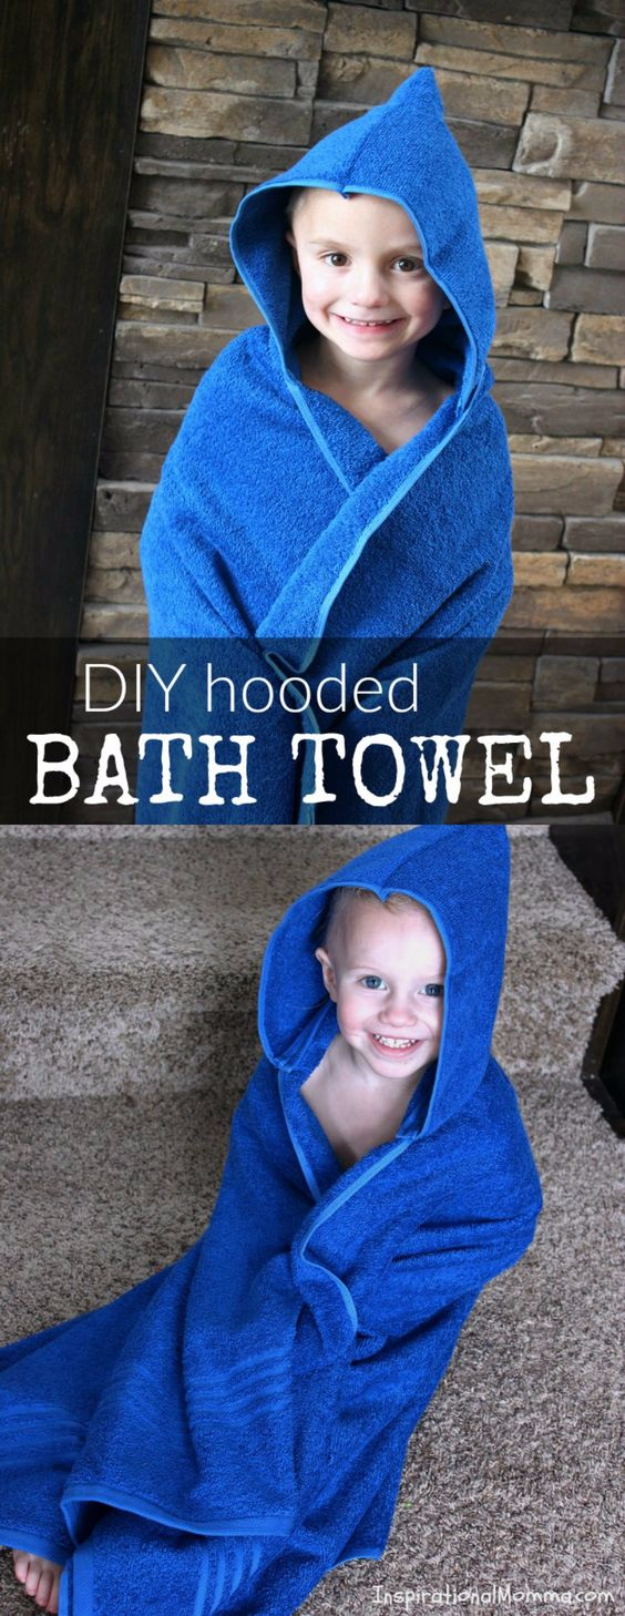 51 Things to Sew for Baby - DIY Hooded Bath Towel - Cool Gifts For Baby, Easy Things To Sew And Sell, Quick Things To Sew For Baby, Easy Baby Sewing Projects For Beginners, Baby Items To Sew And Sell #baby #diy #diygifts